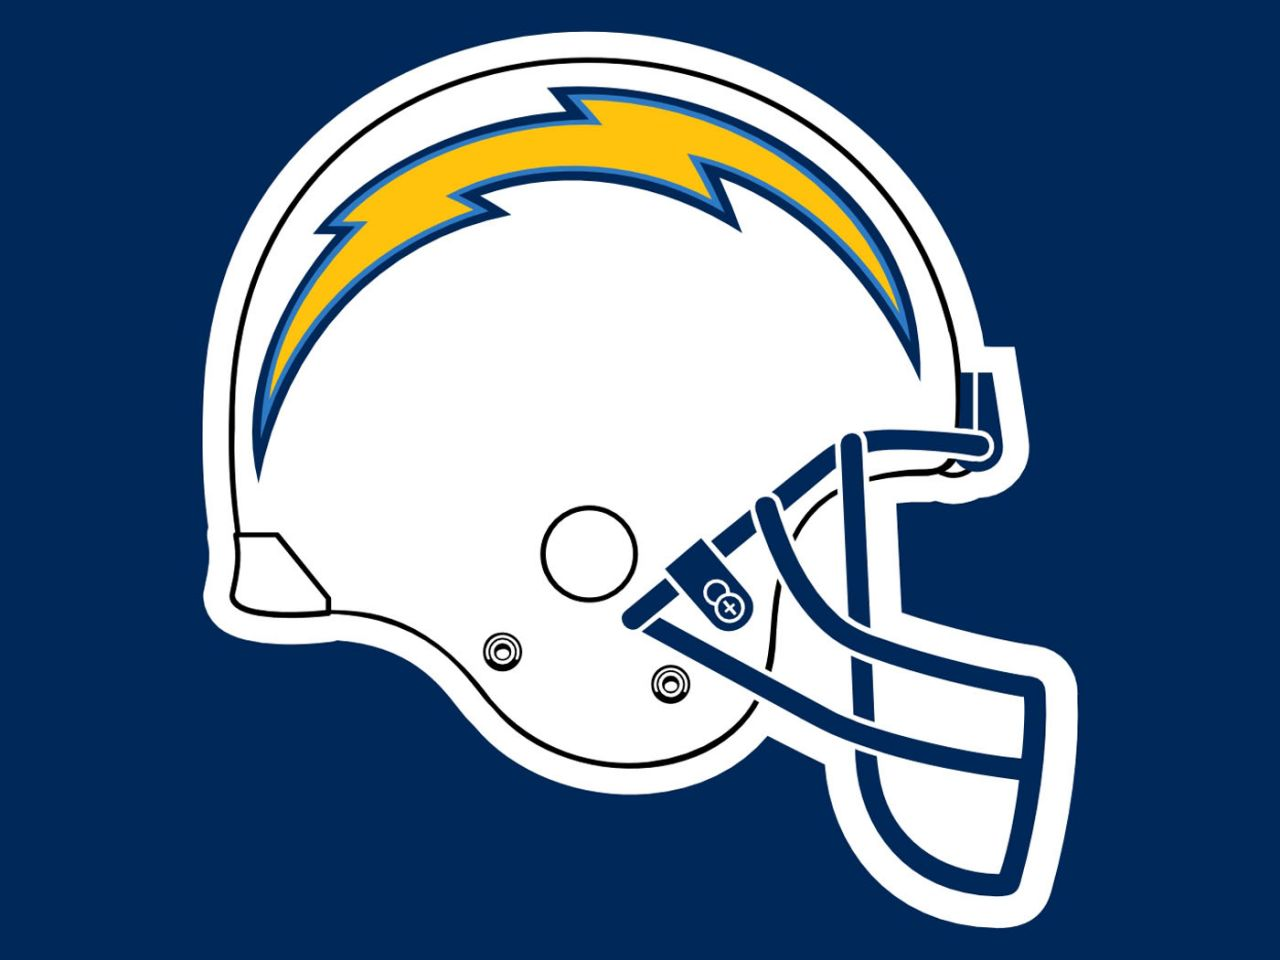 Chargers wallpaper 14773 1280x960 px hdwallsource chargers wallpaper 14773 voltagebd Choice Image